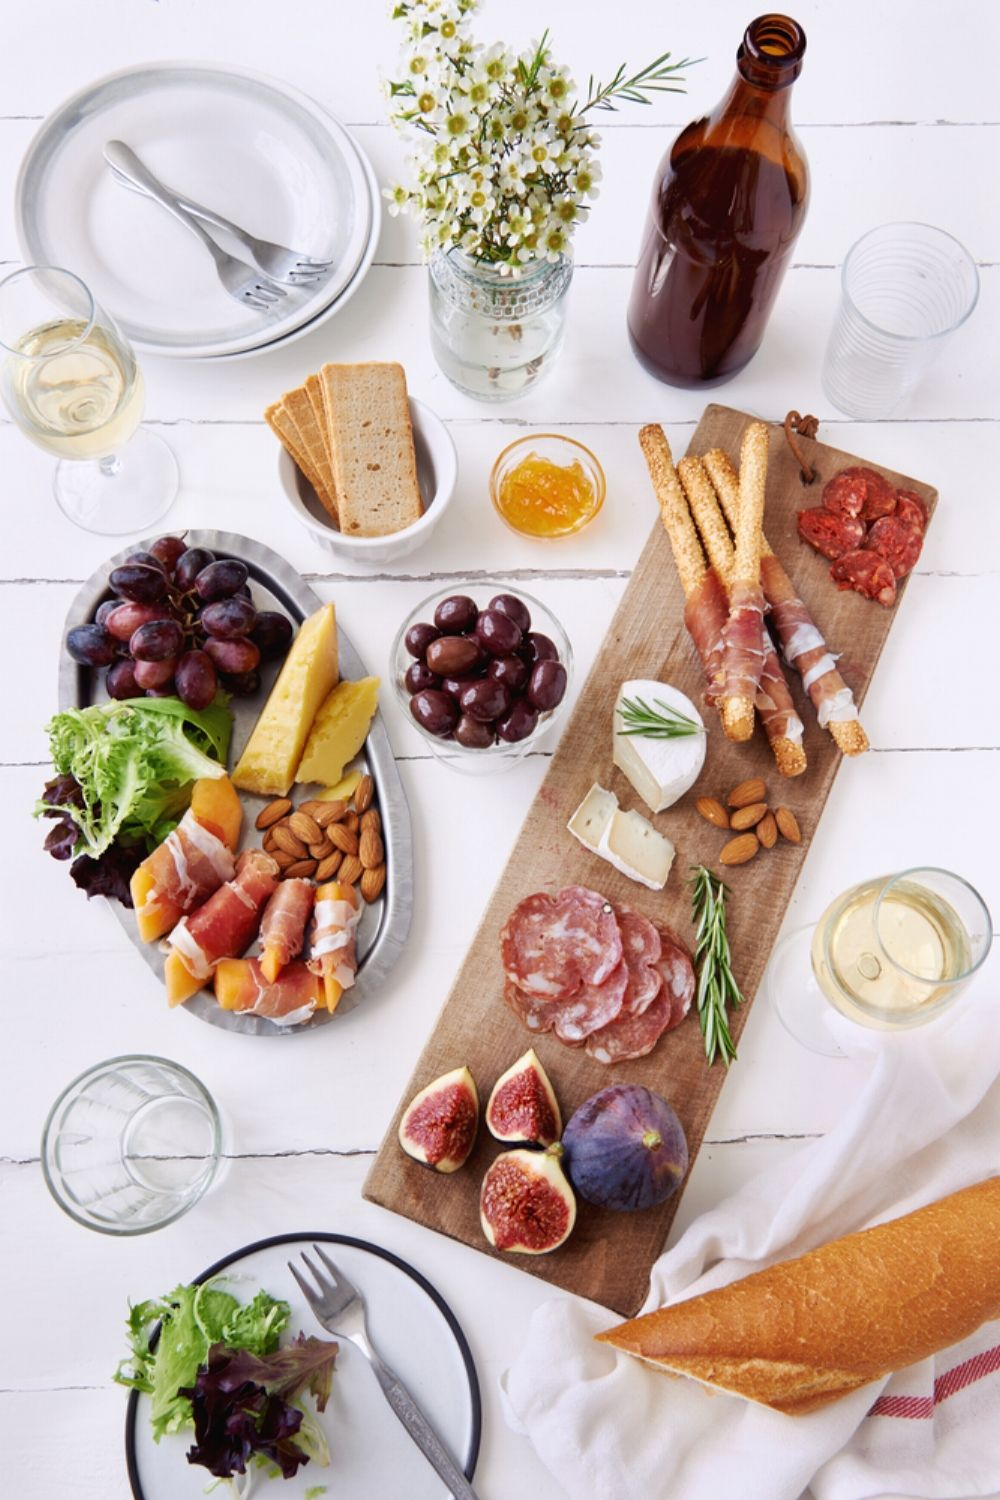 Giovanni's Italiano Cucina Blountville Tn How To Style A Delicious Sharing Platter Layout Pegs Gourmet